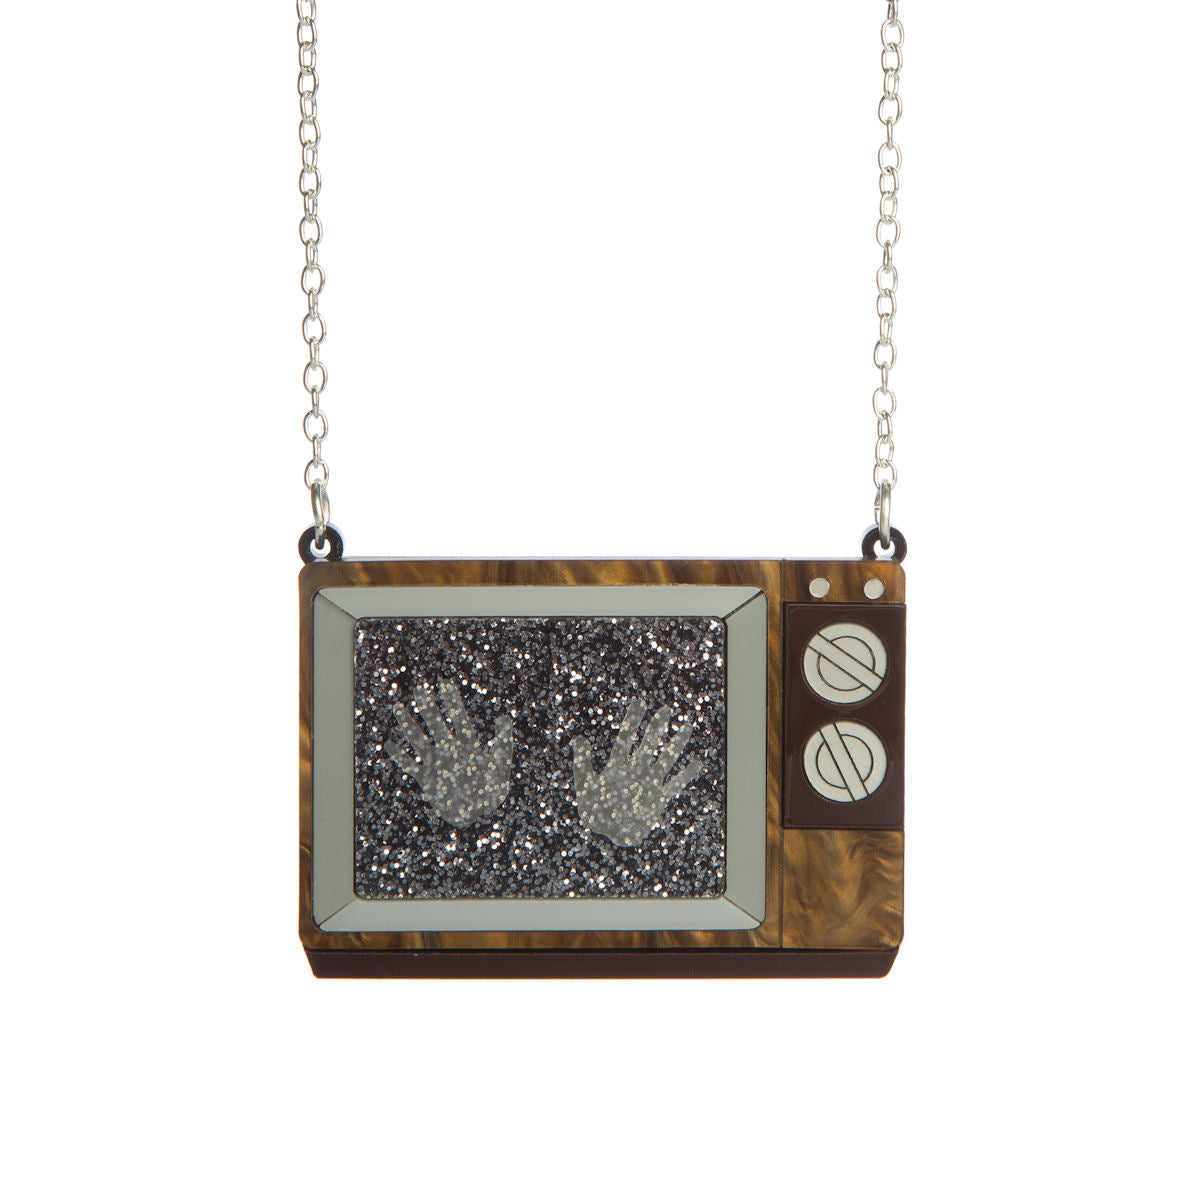 Sugar & Vice Haunted TV Set Necklace